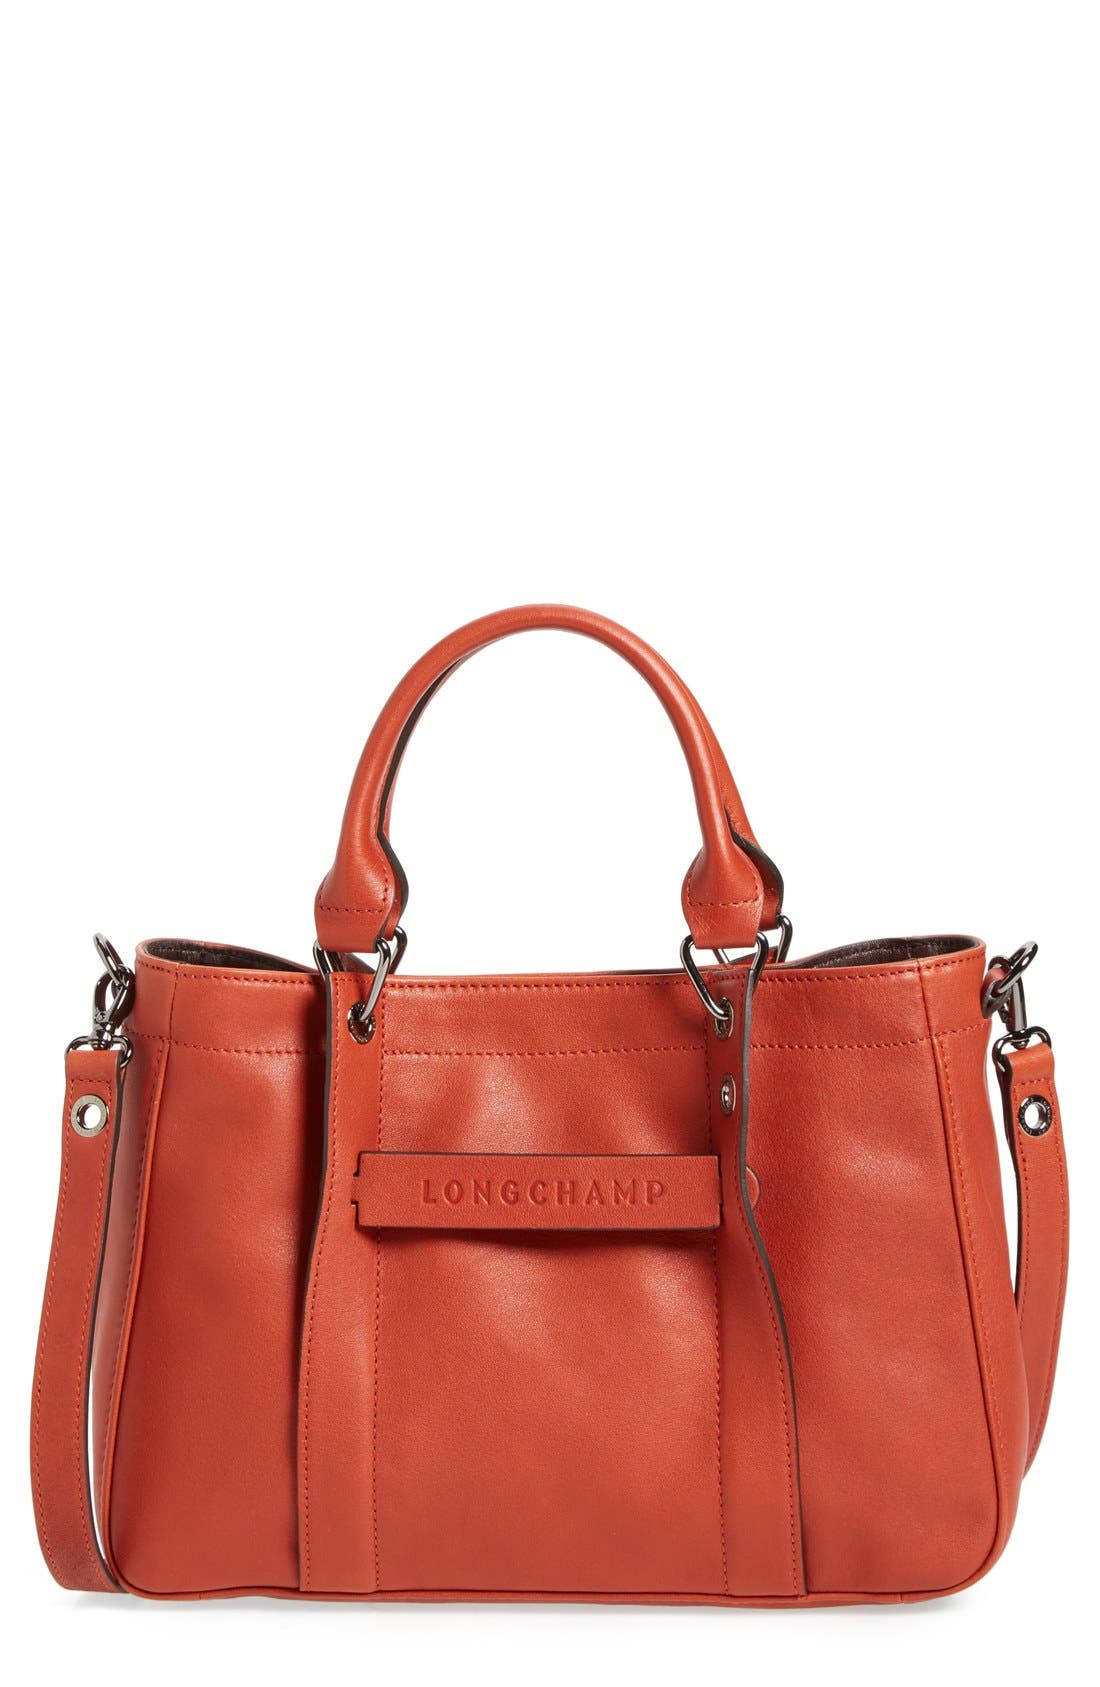 Longchamp 'Small 3D' Leather Tote